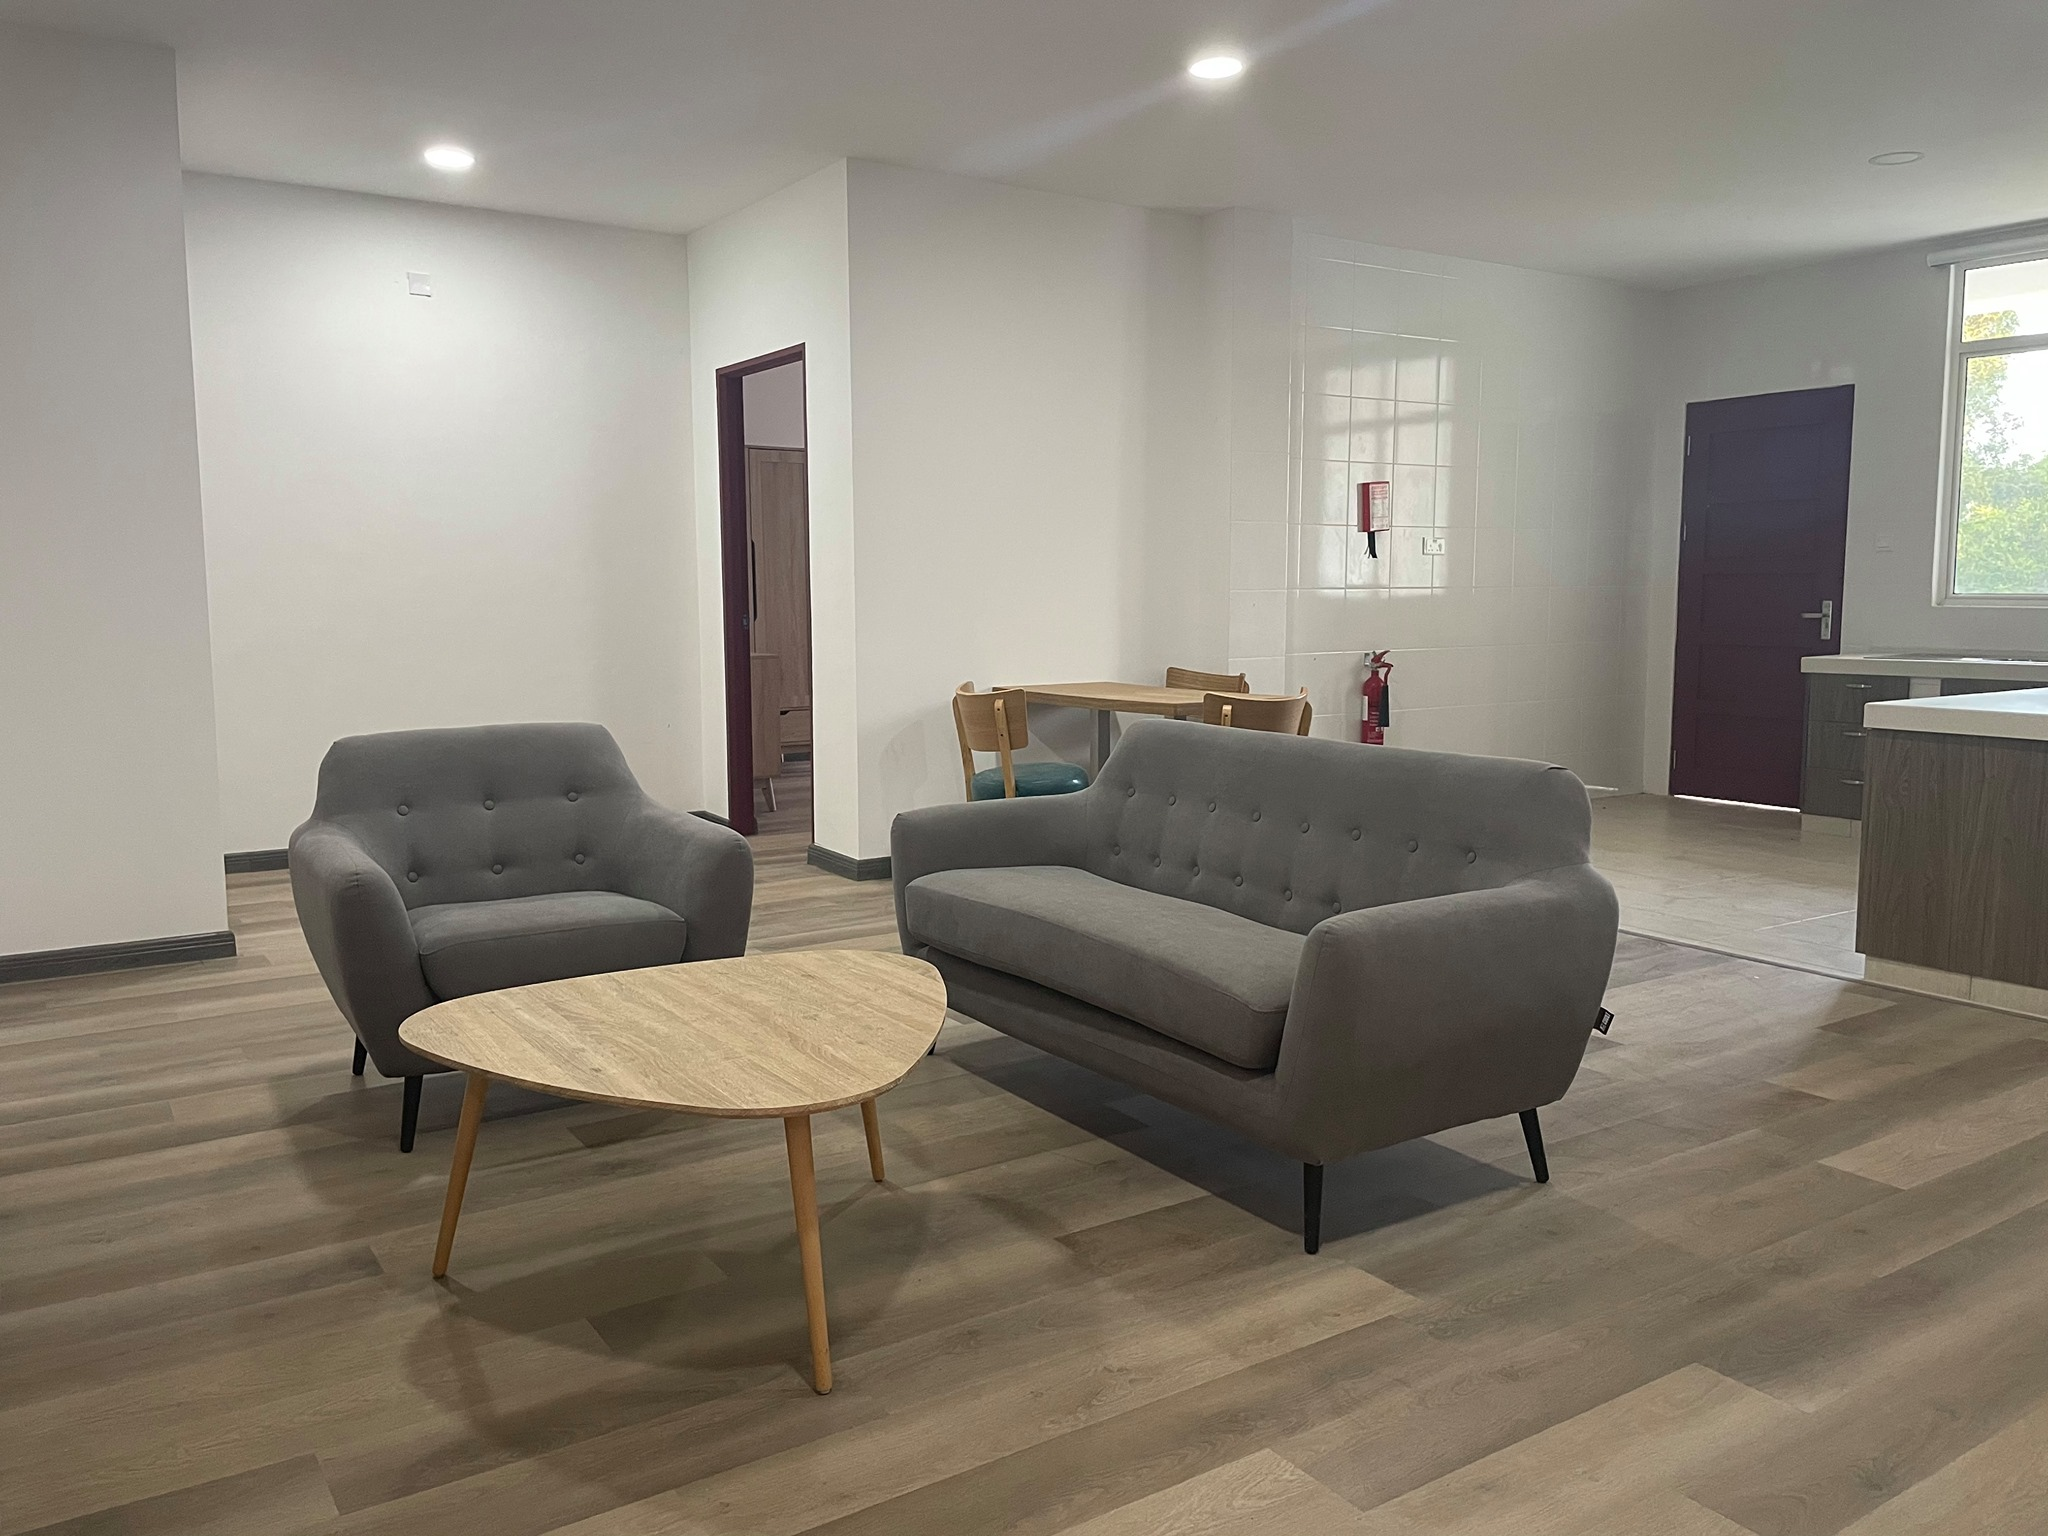 New 2 bedroom apartment for rent